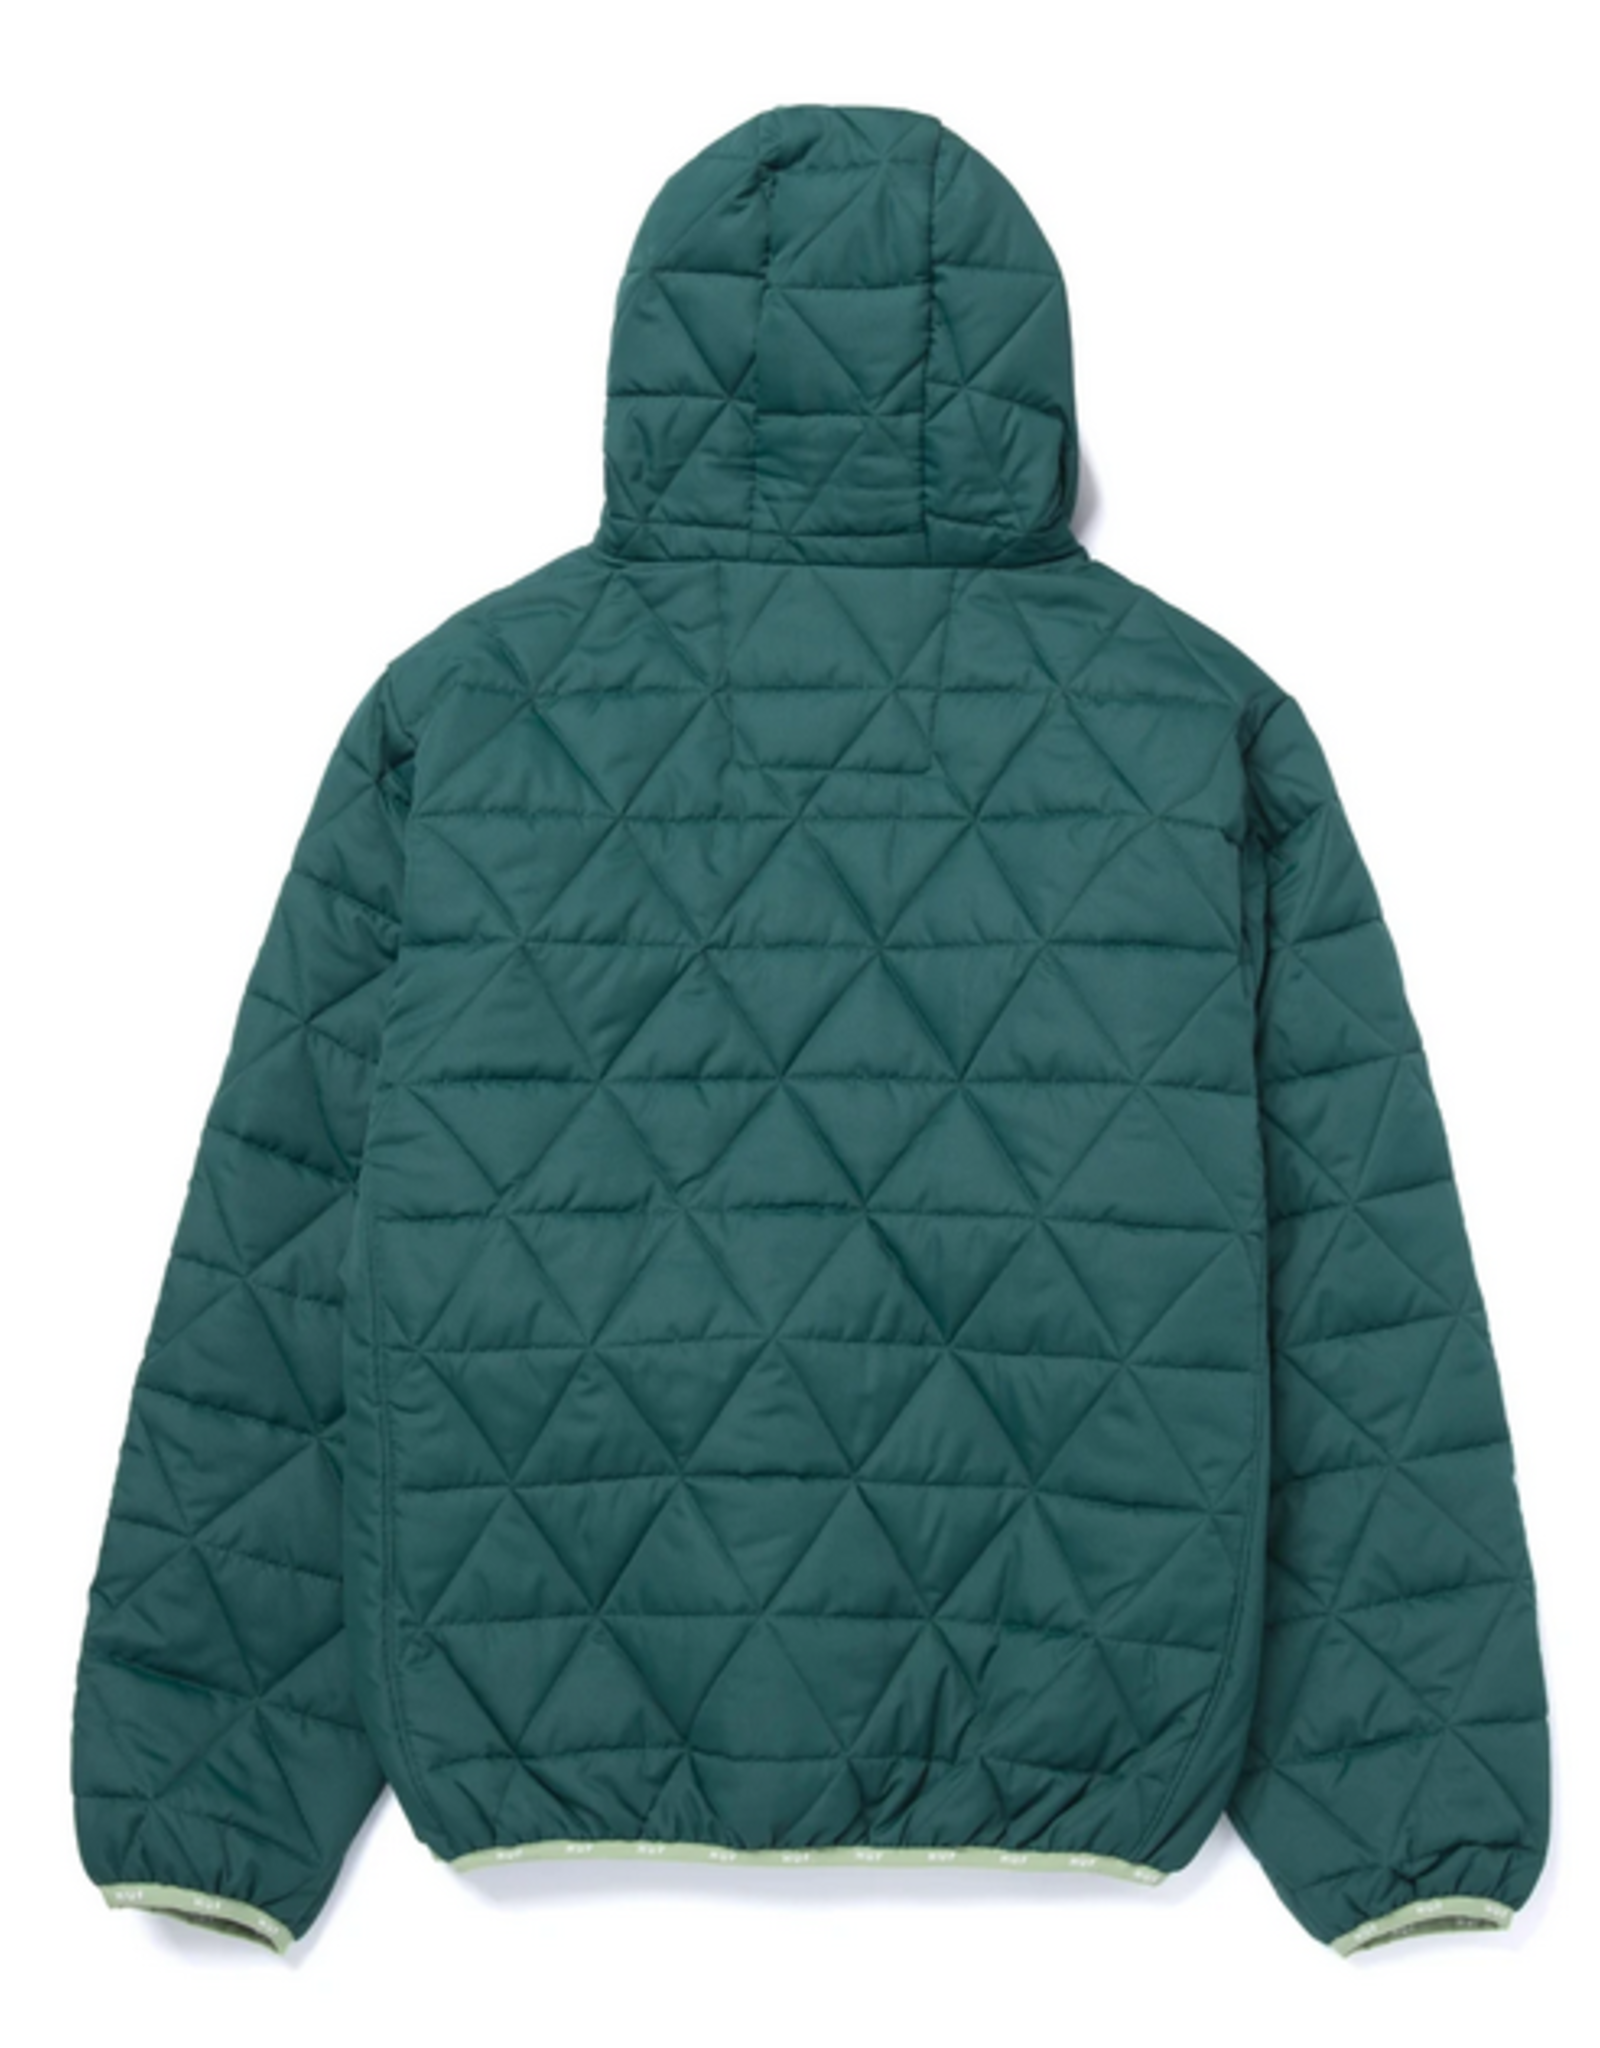 HUF HUF POLYGON QUILTED JACKET SYCAMORE